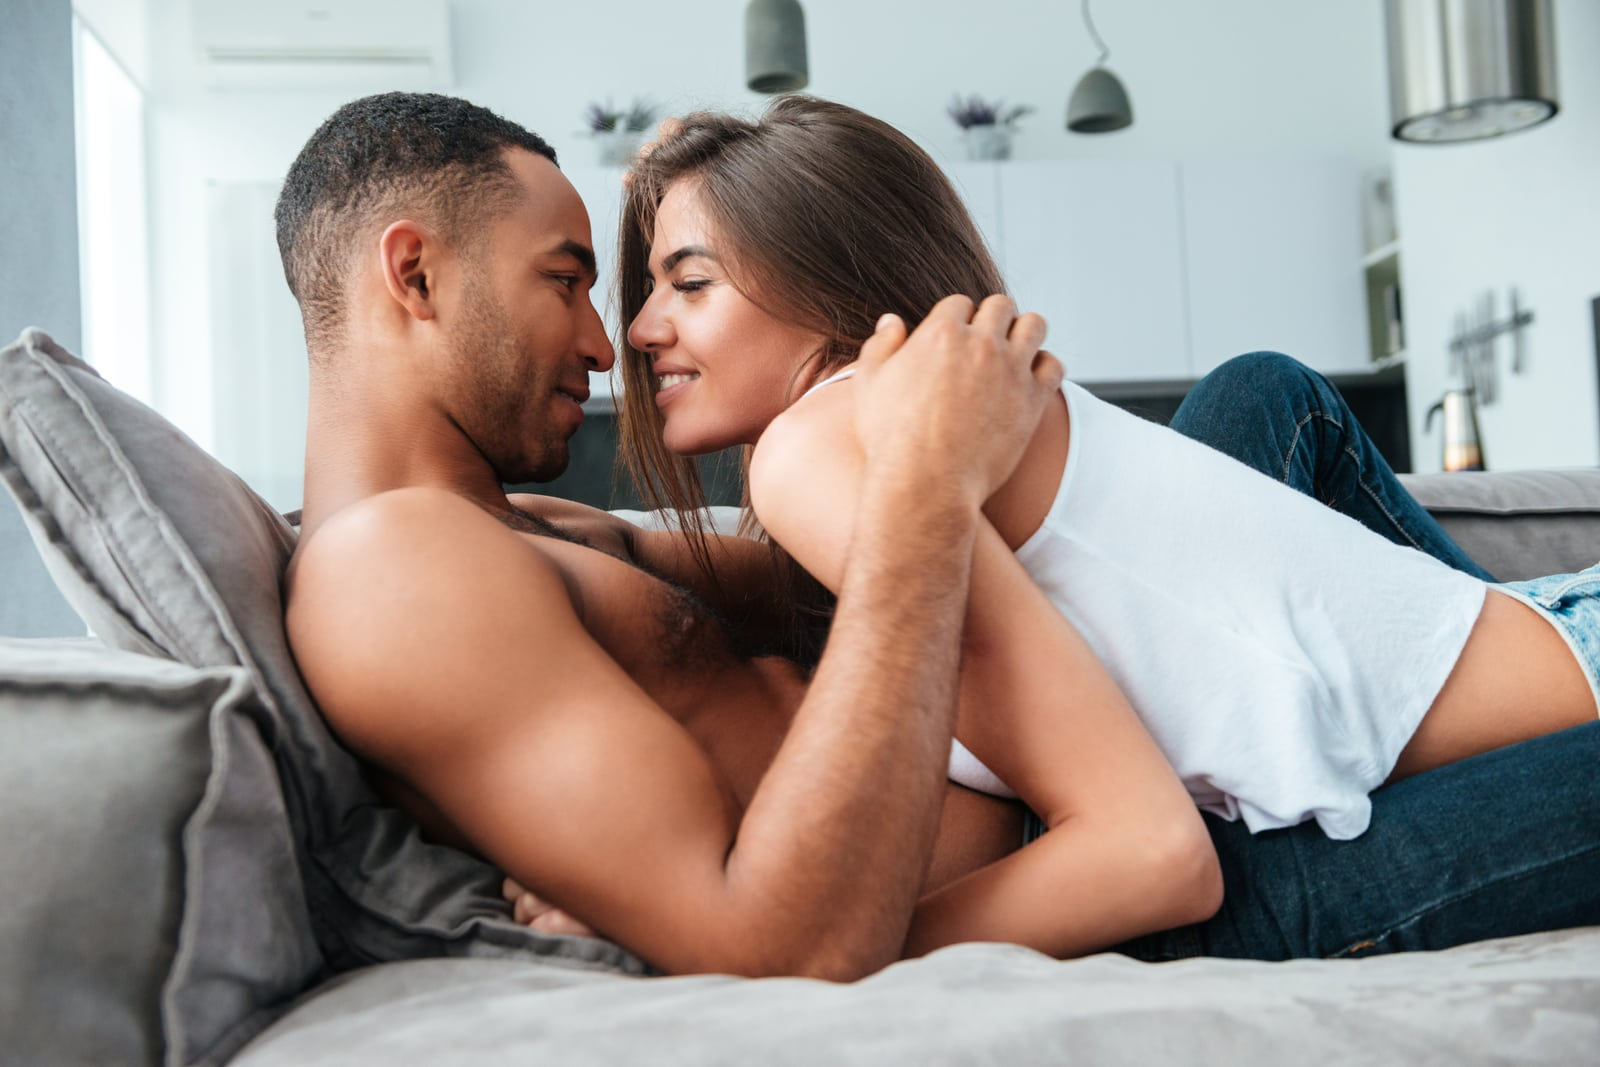 a happy loving couple caresses each other in bed